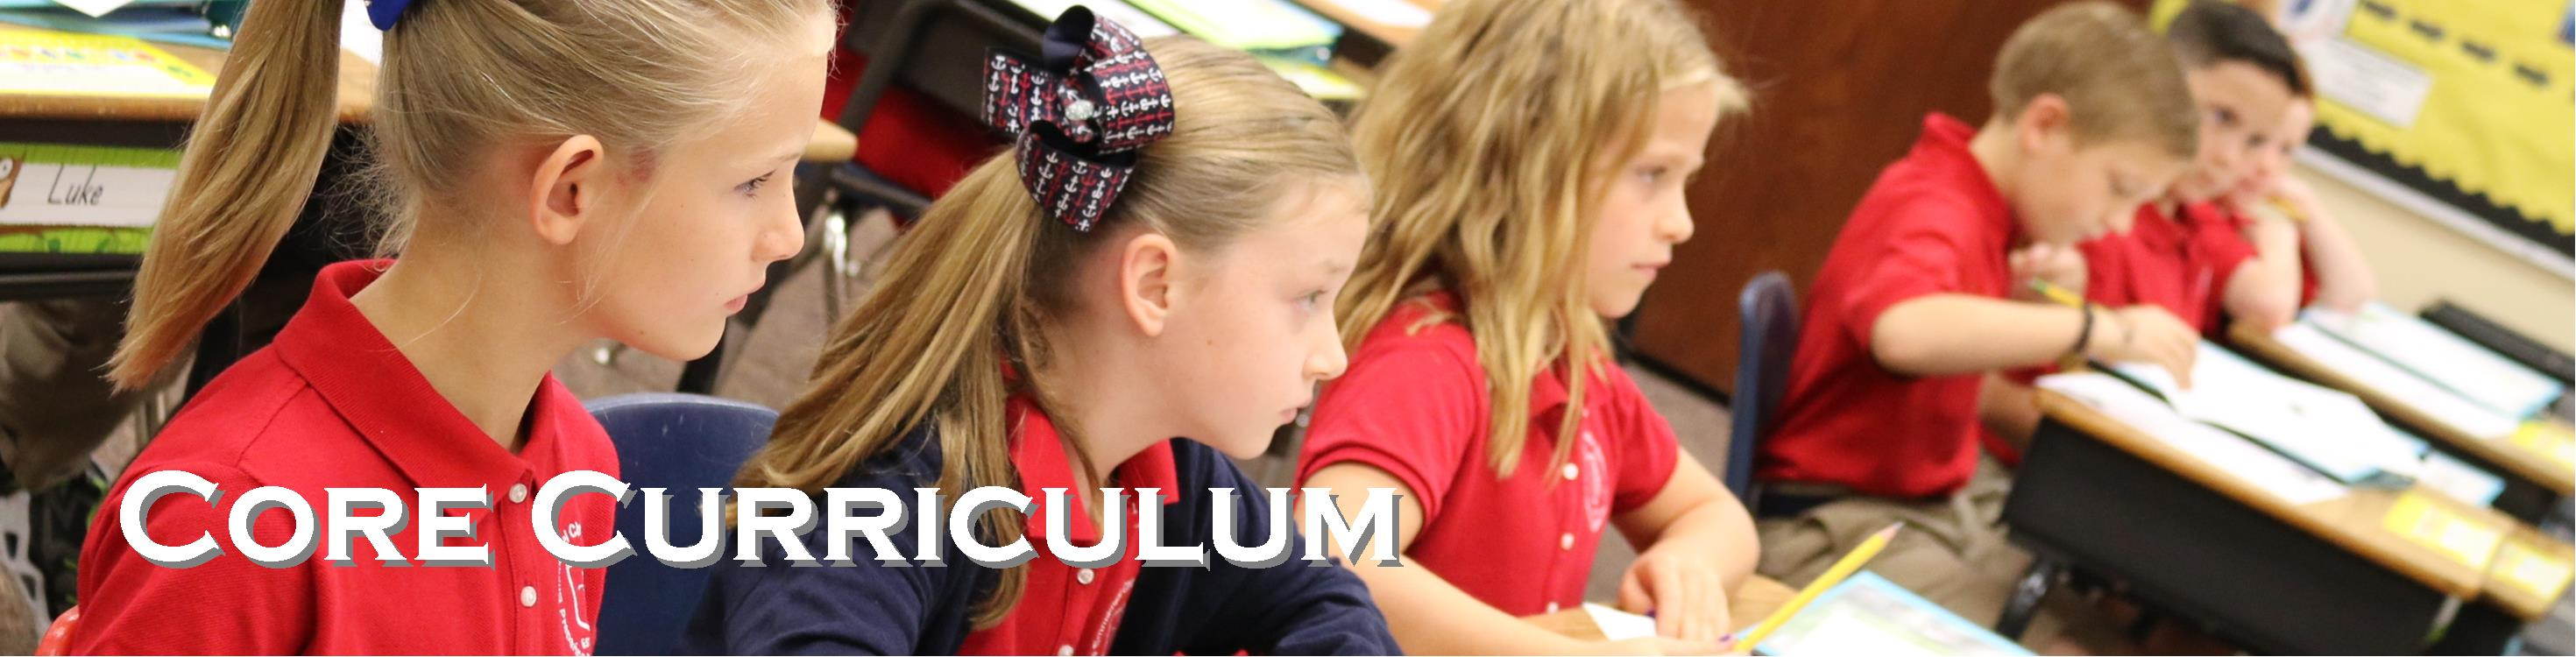 curriculum-header